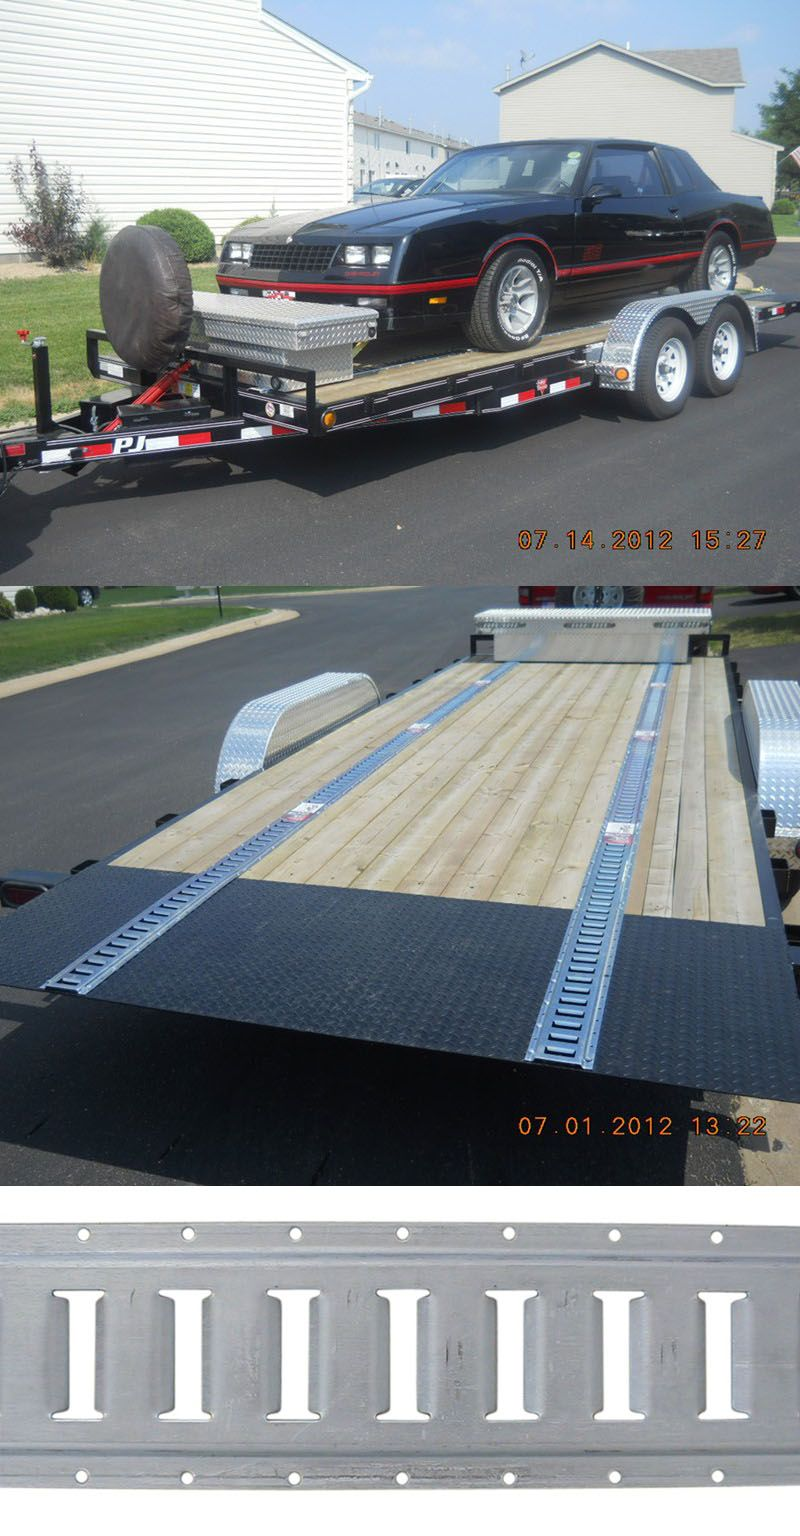 Erickson Horizontal E Track Zinc Coated Steel 2000 Lbs 5 Lengthening Car Trailer Page 2 Pirate4x4com 4x4 And Offroad Long With Slots Perfect For Installation In Truck Or Beds Attach An Atv Vehicle More Security